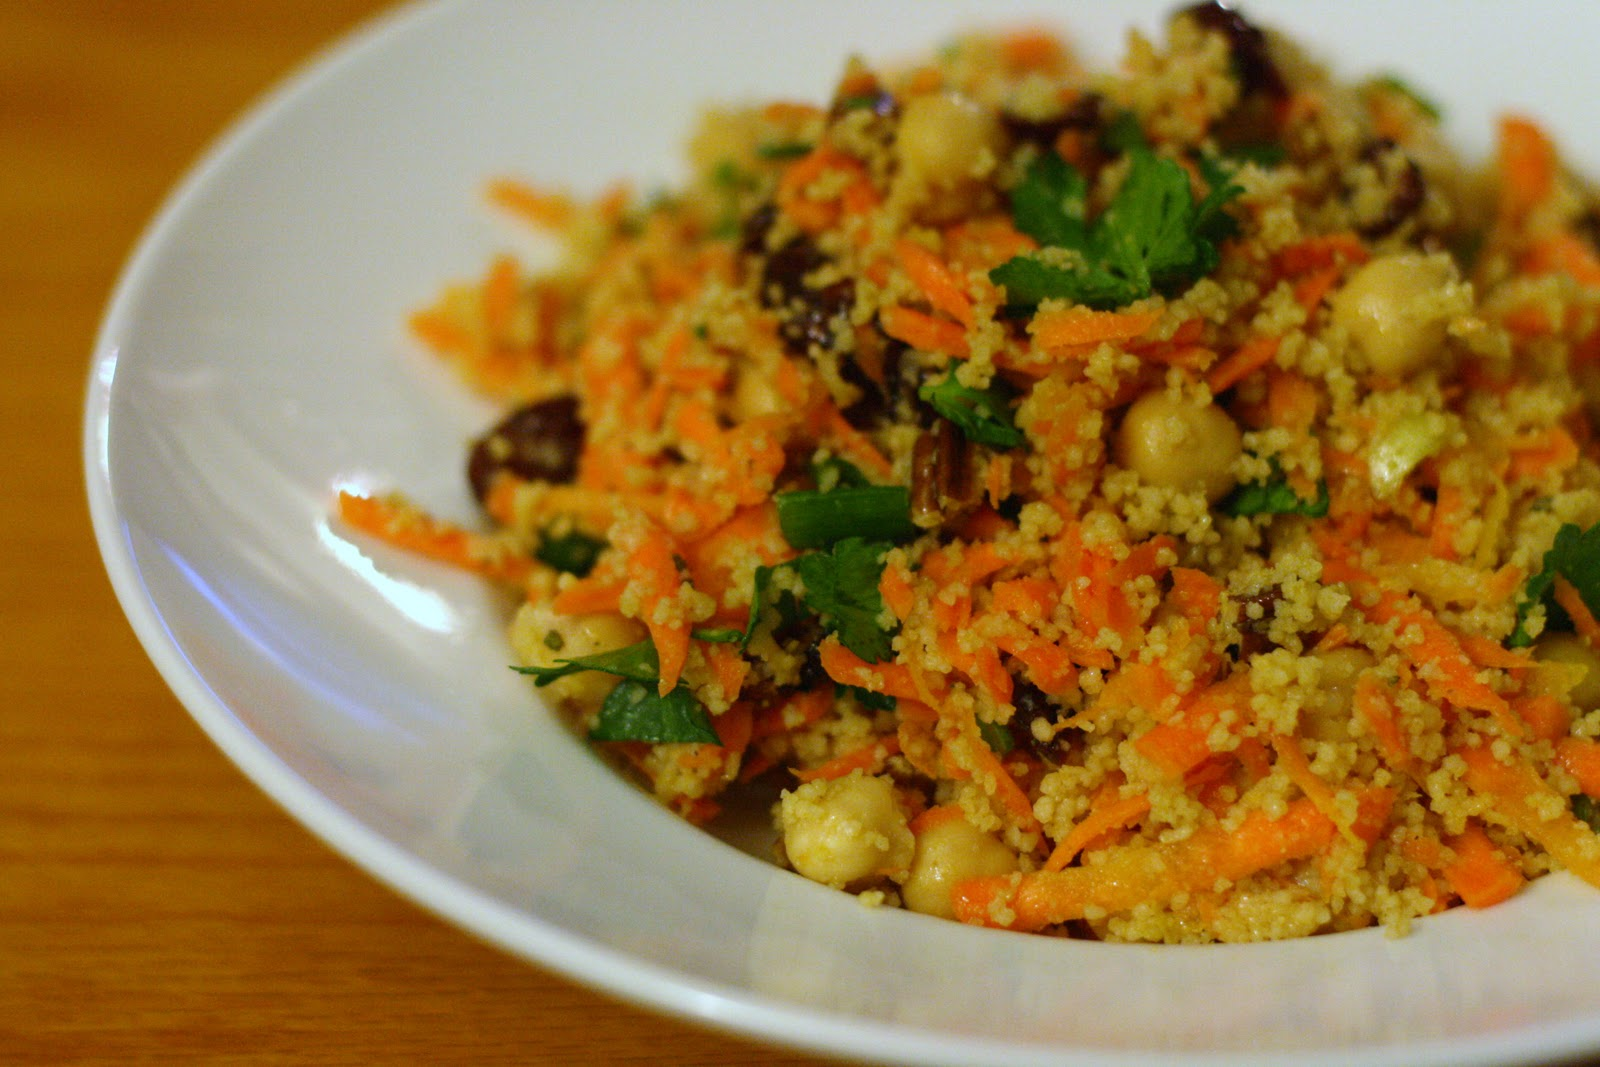 Spicy Couscous with Chickpeas